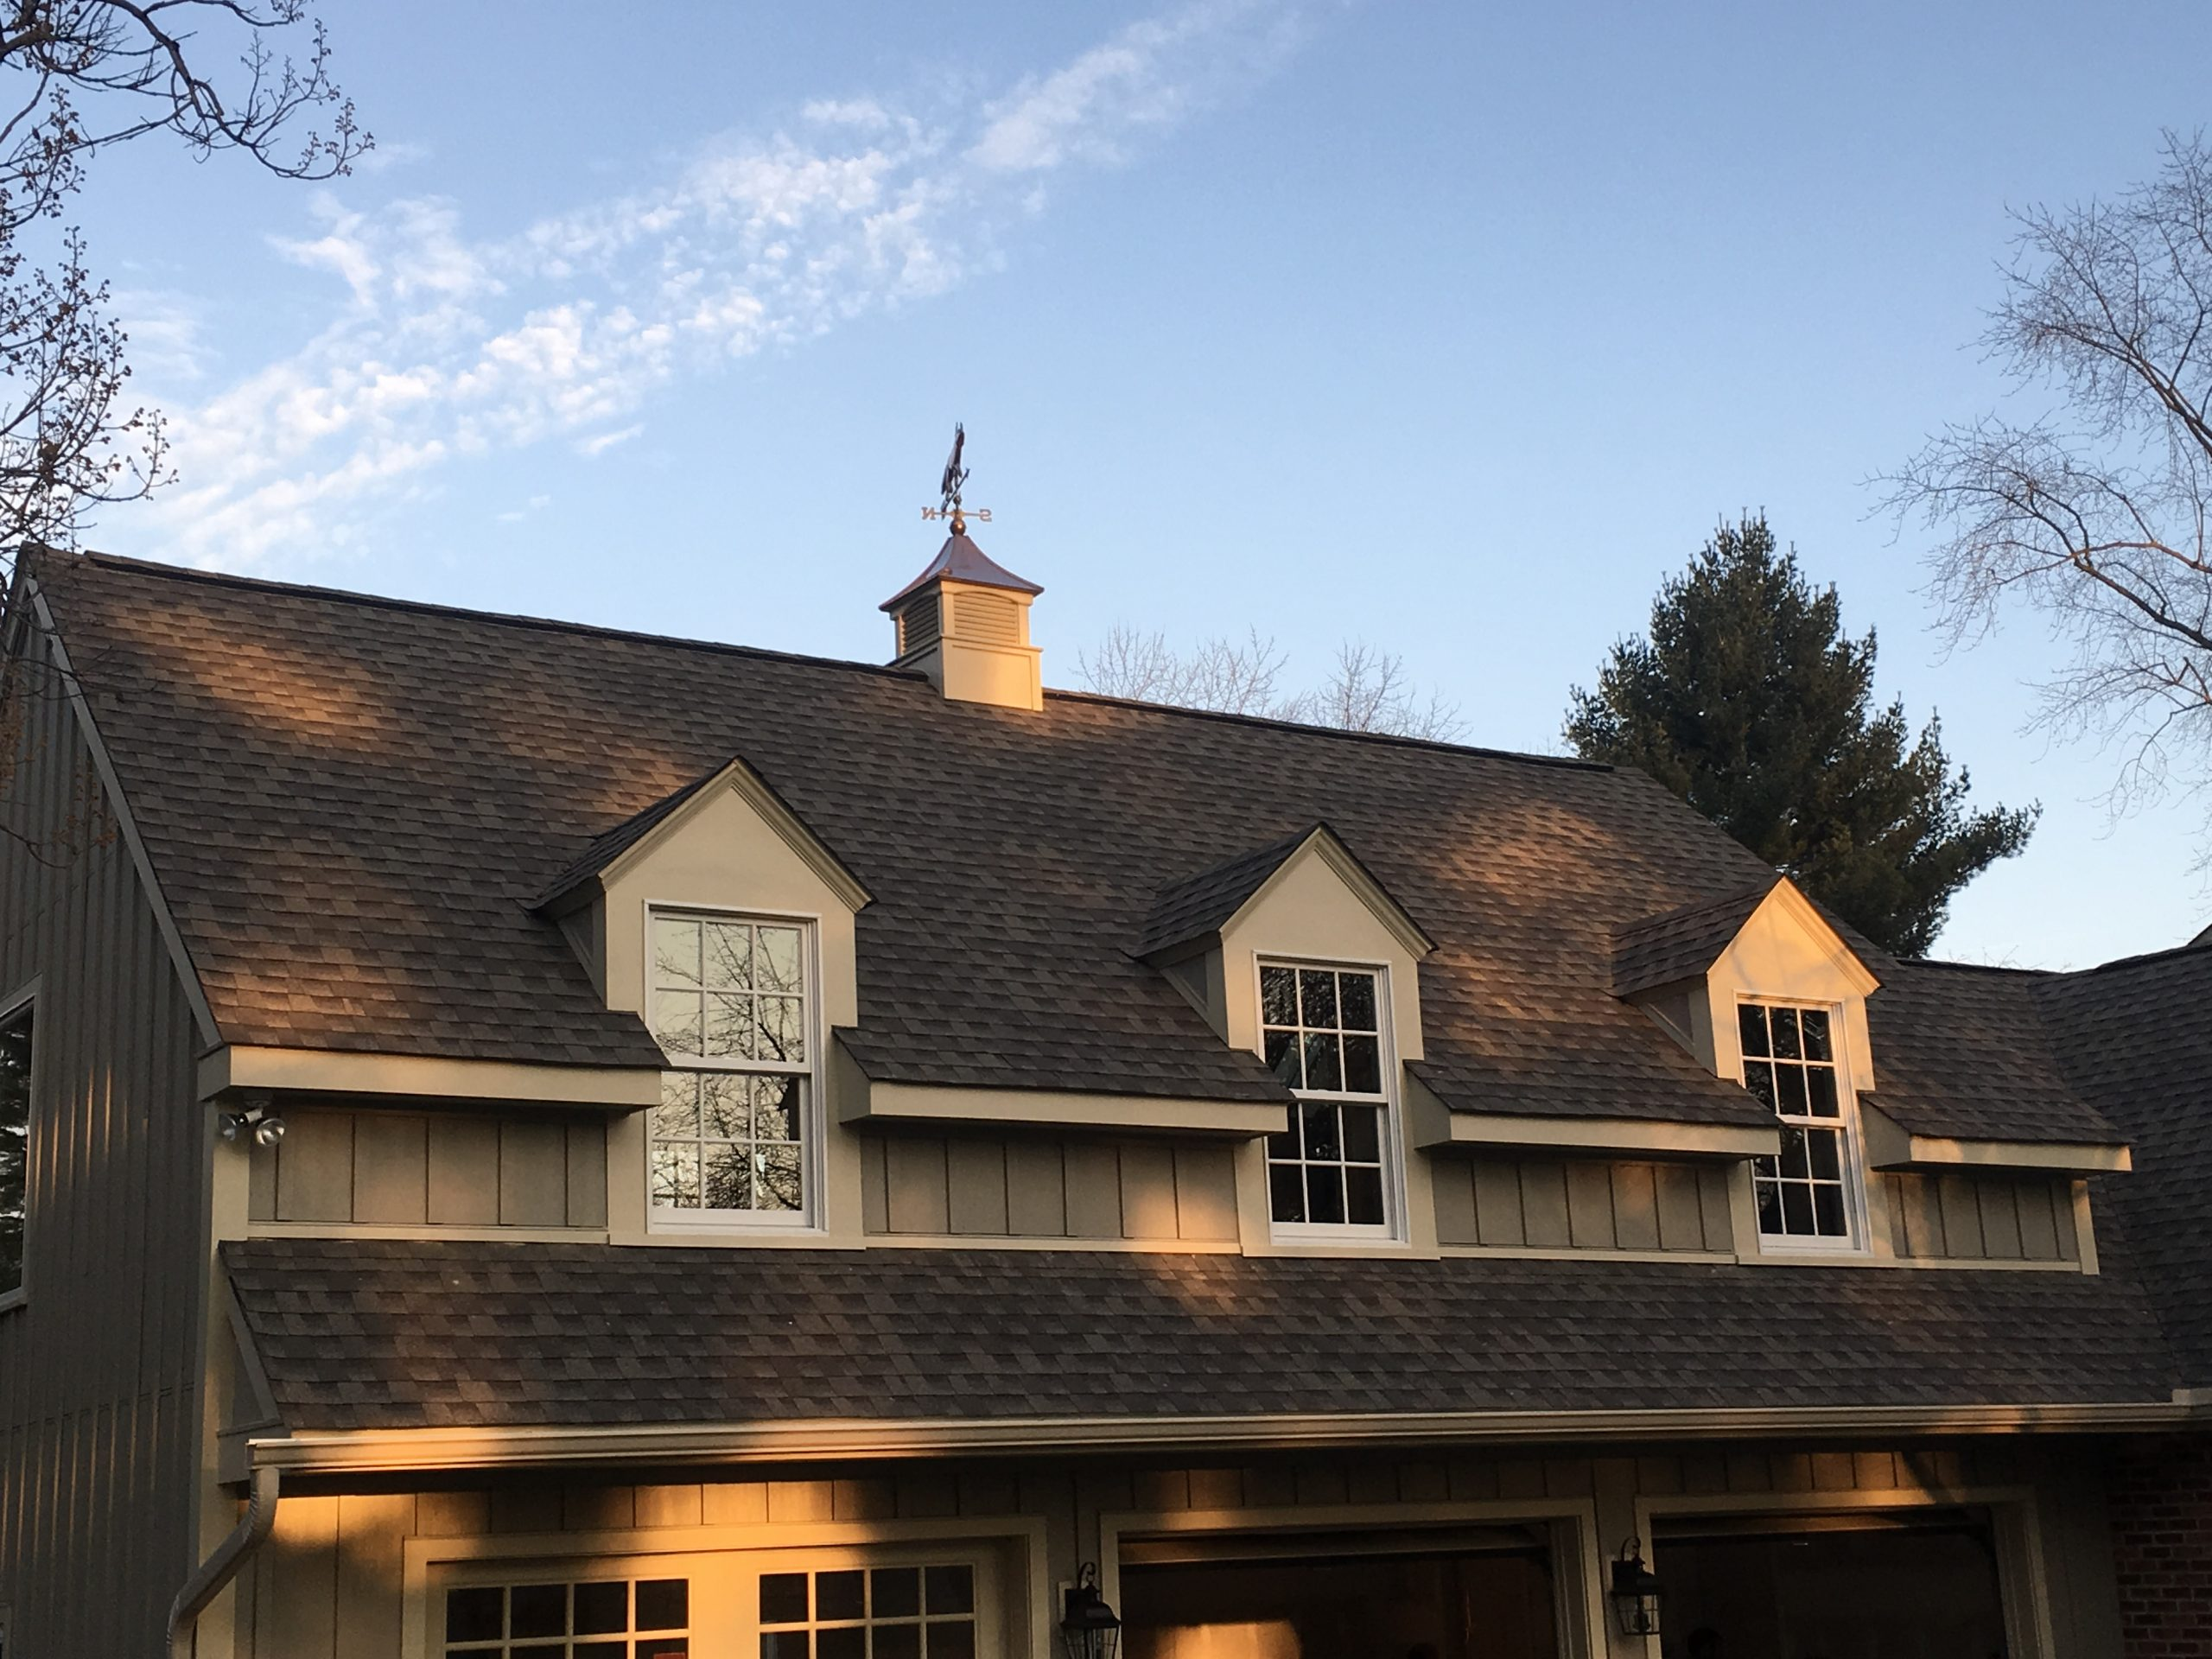 Shingle roof with a weather vane